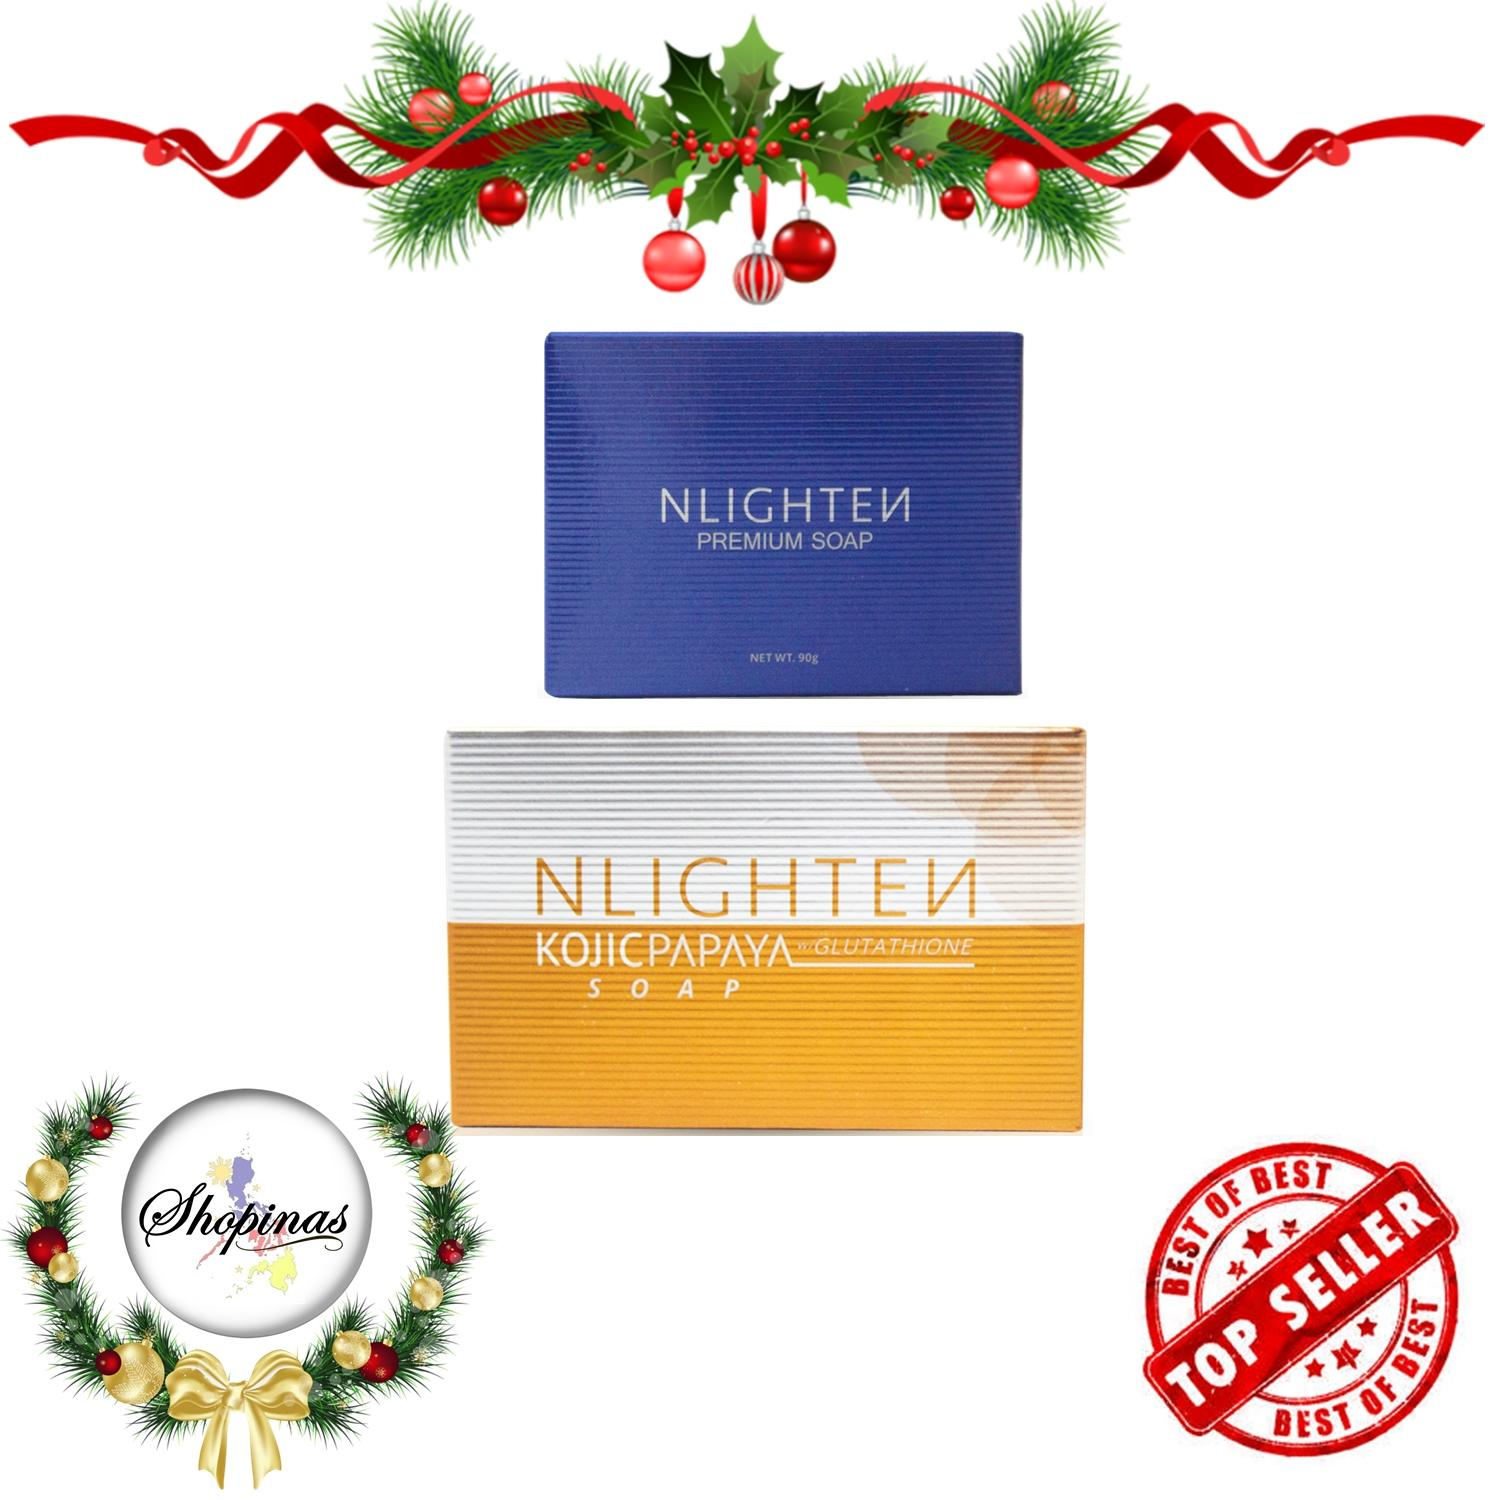 NLIGHTEN Philippines NLIGHTEN price list Whitening Soap Cream